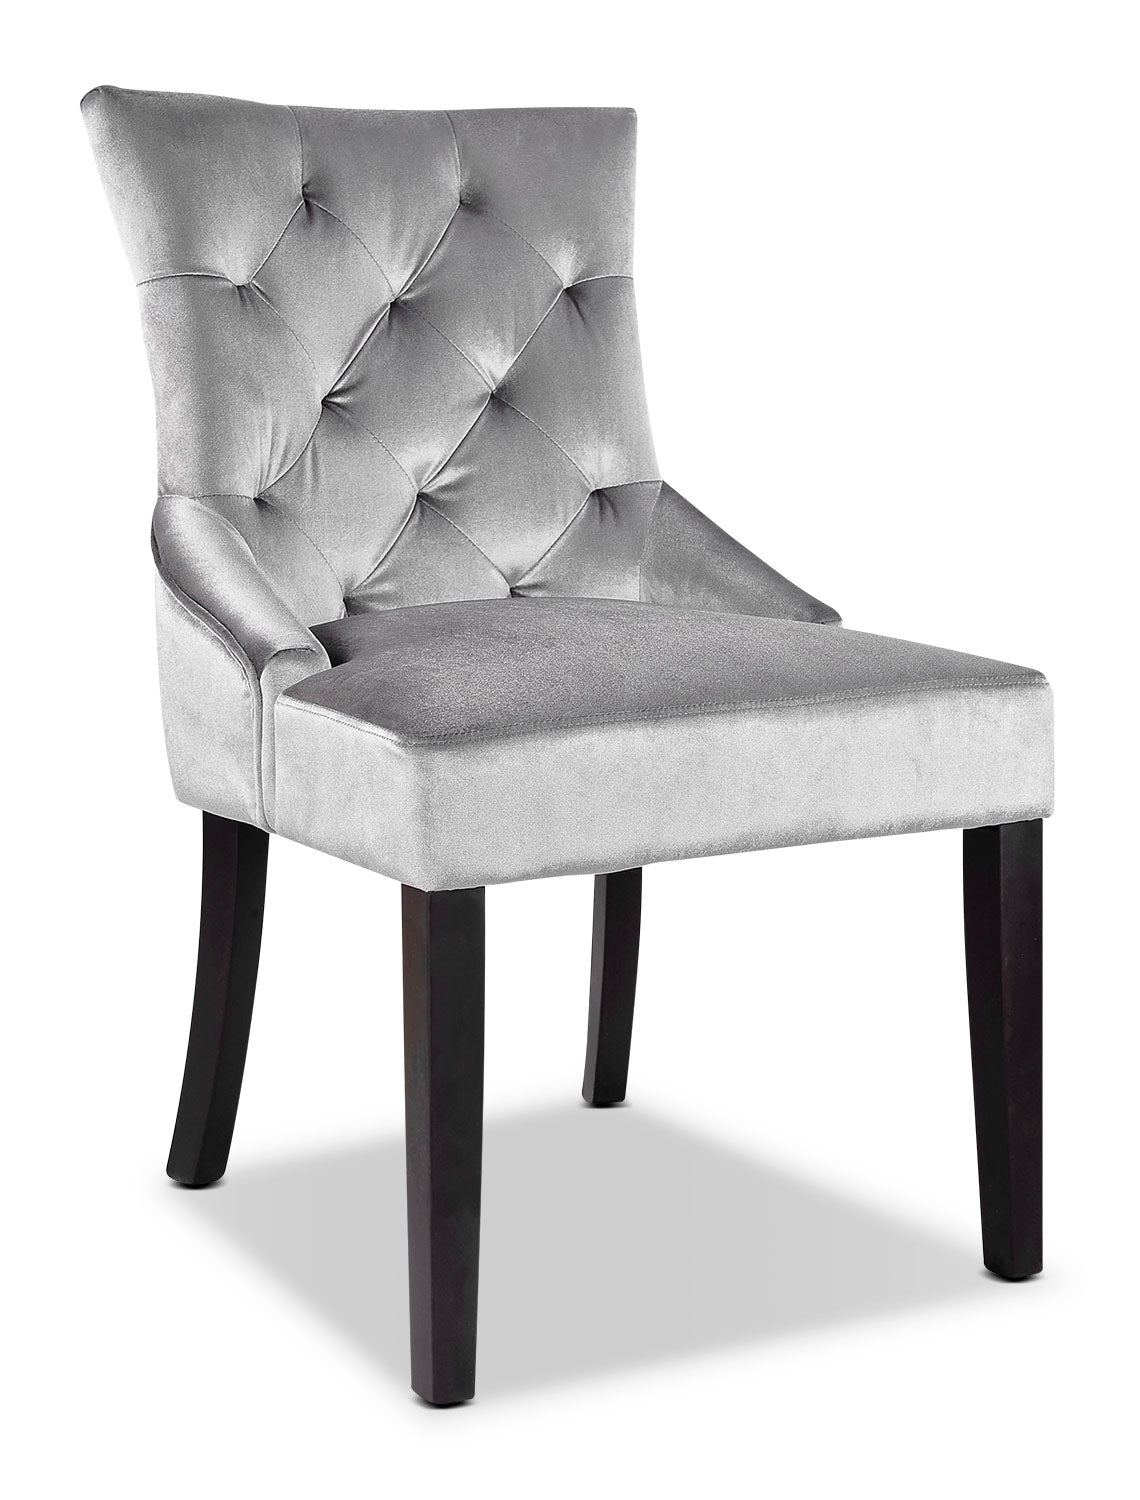 Lad velvet look fabric button tufted accent chair greyfauteuil dappoint lad capitonné en tissu dapparence velours gris